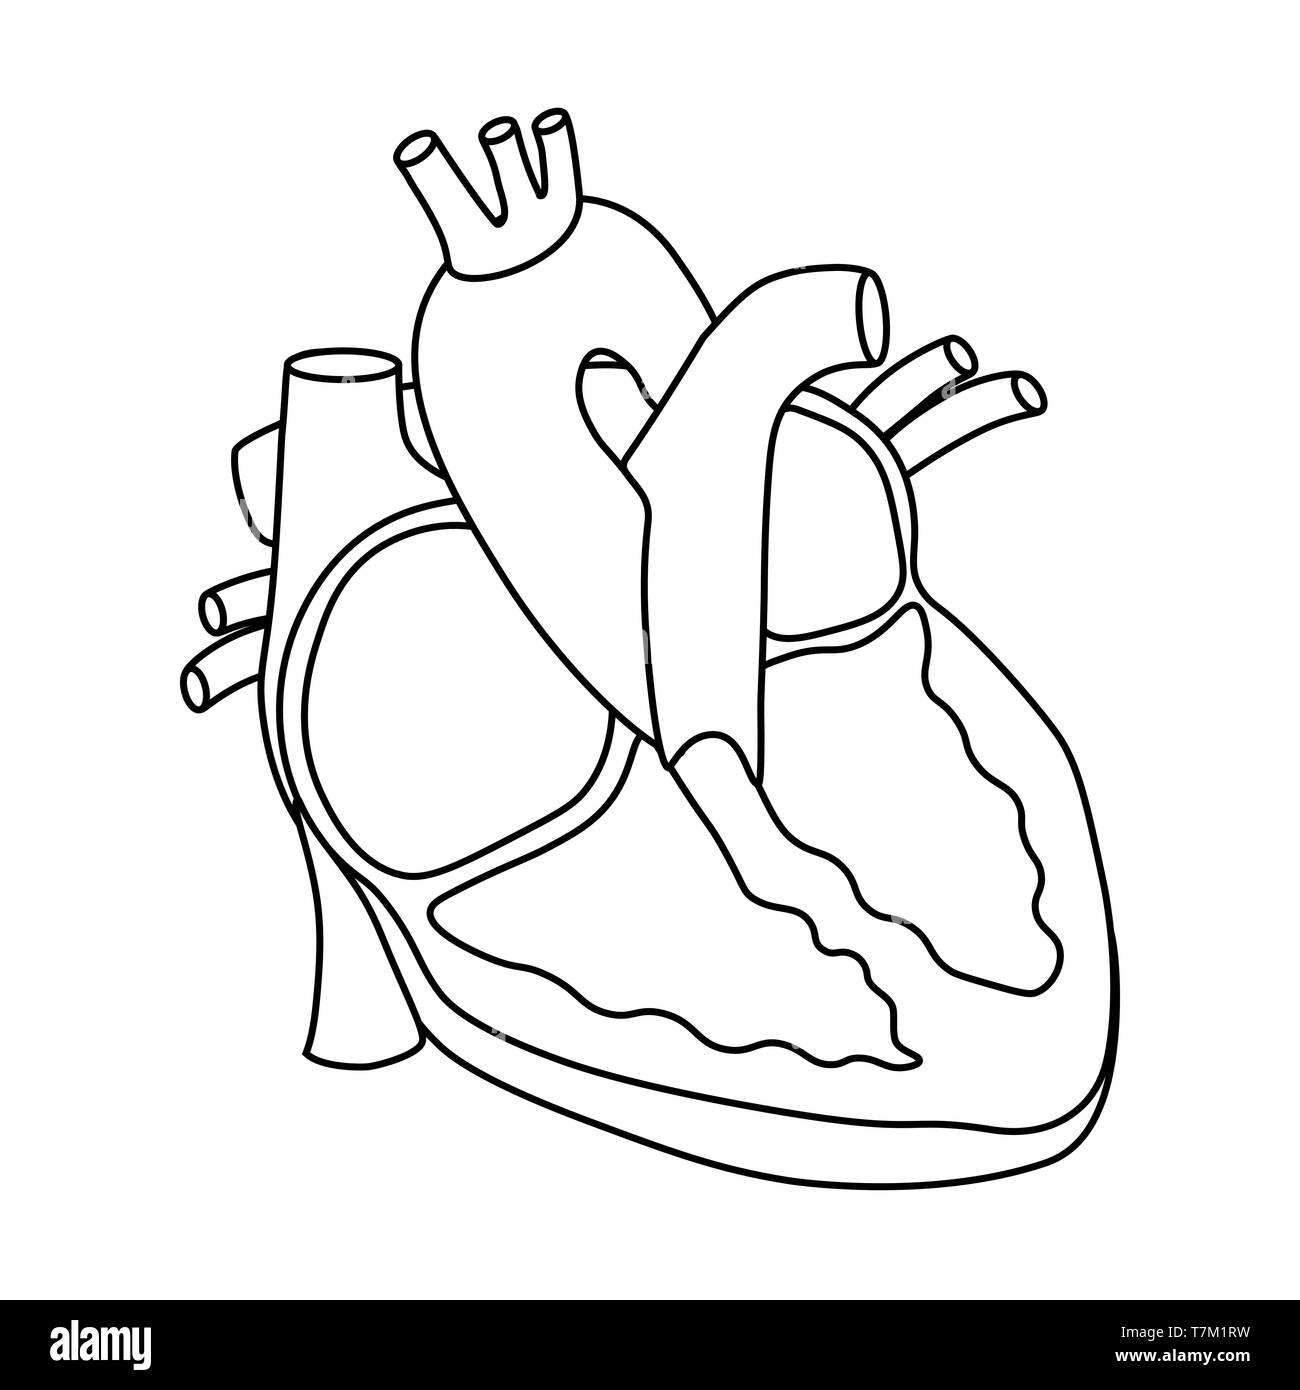 Human Circulatory System Stock Photos Human Circulatory System